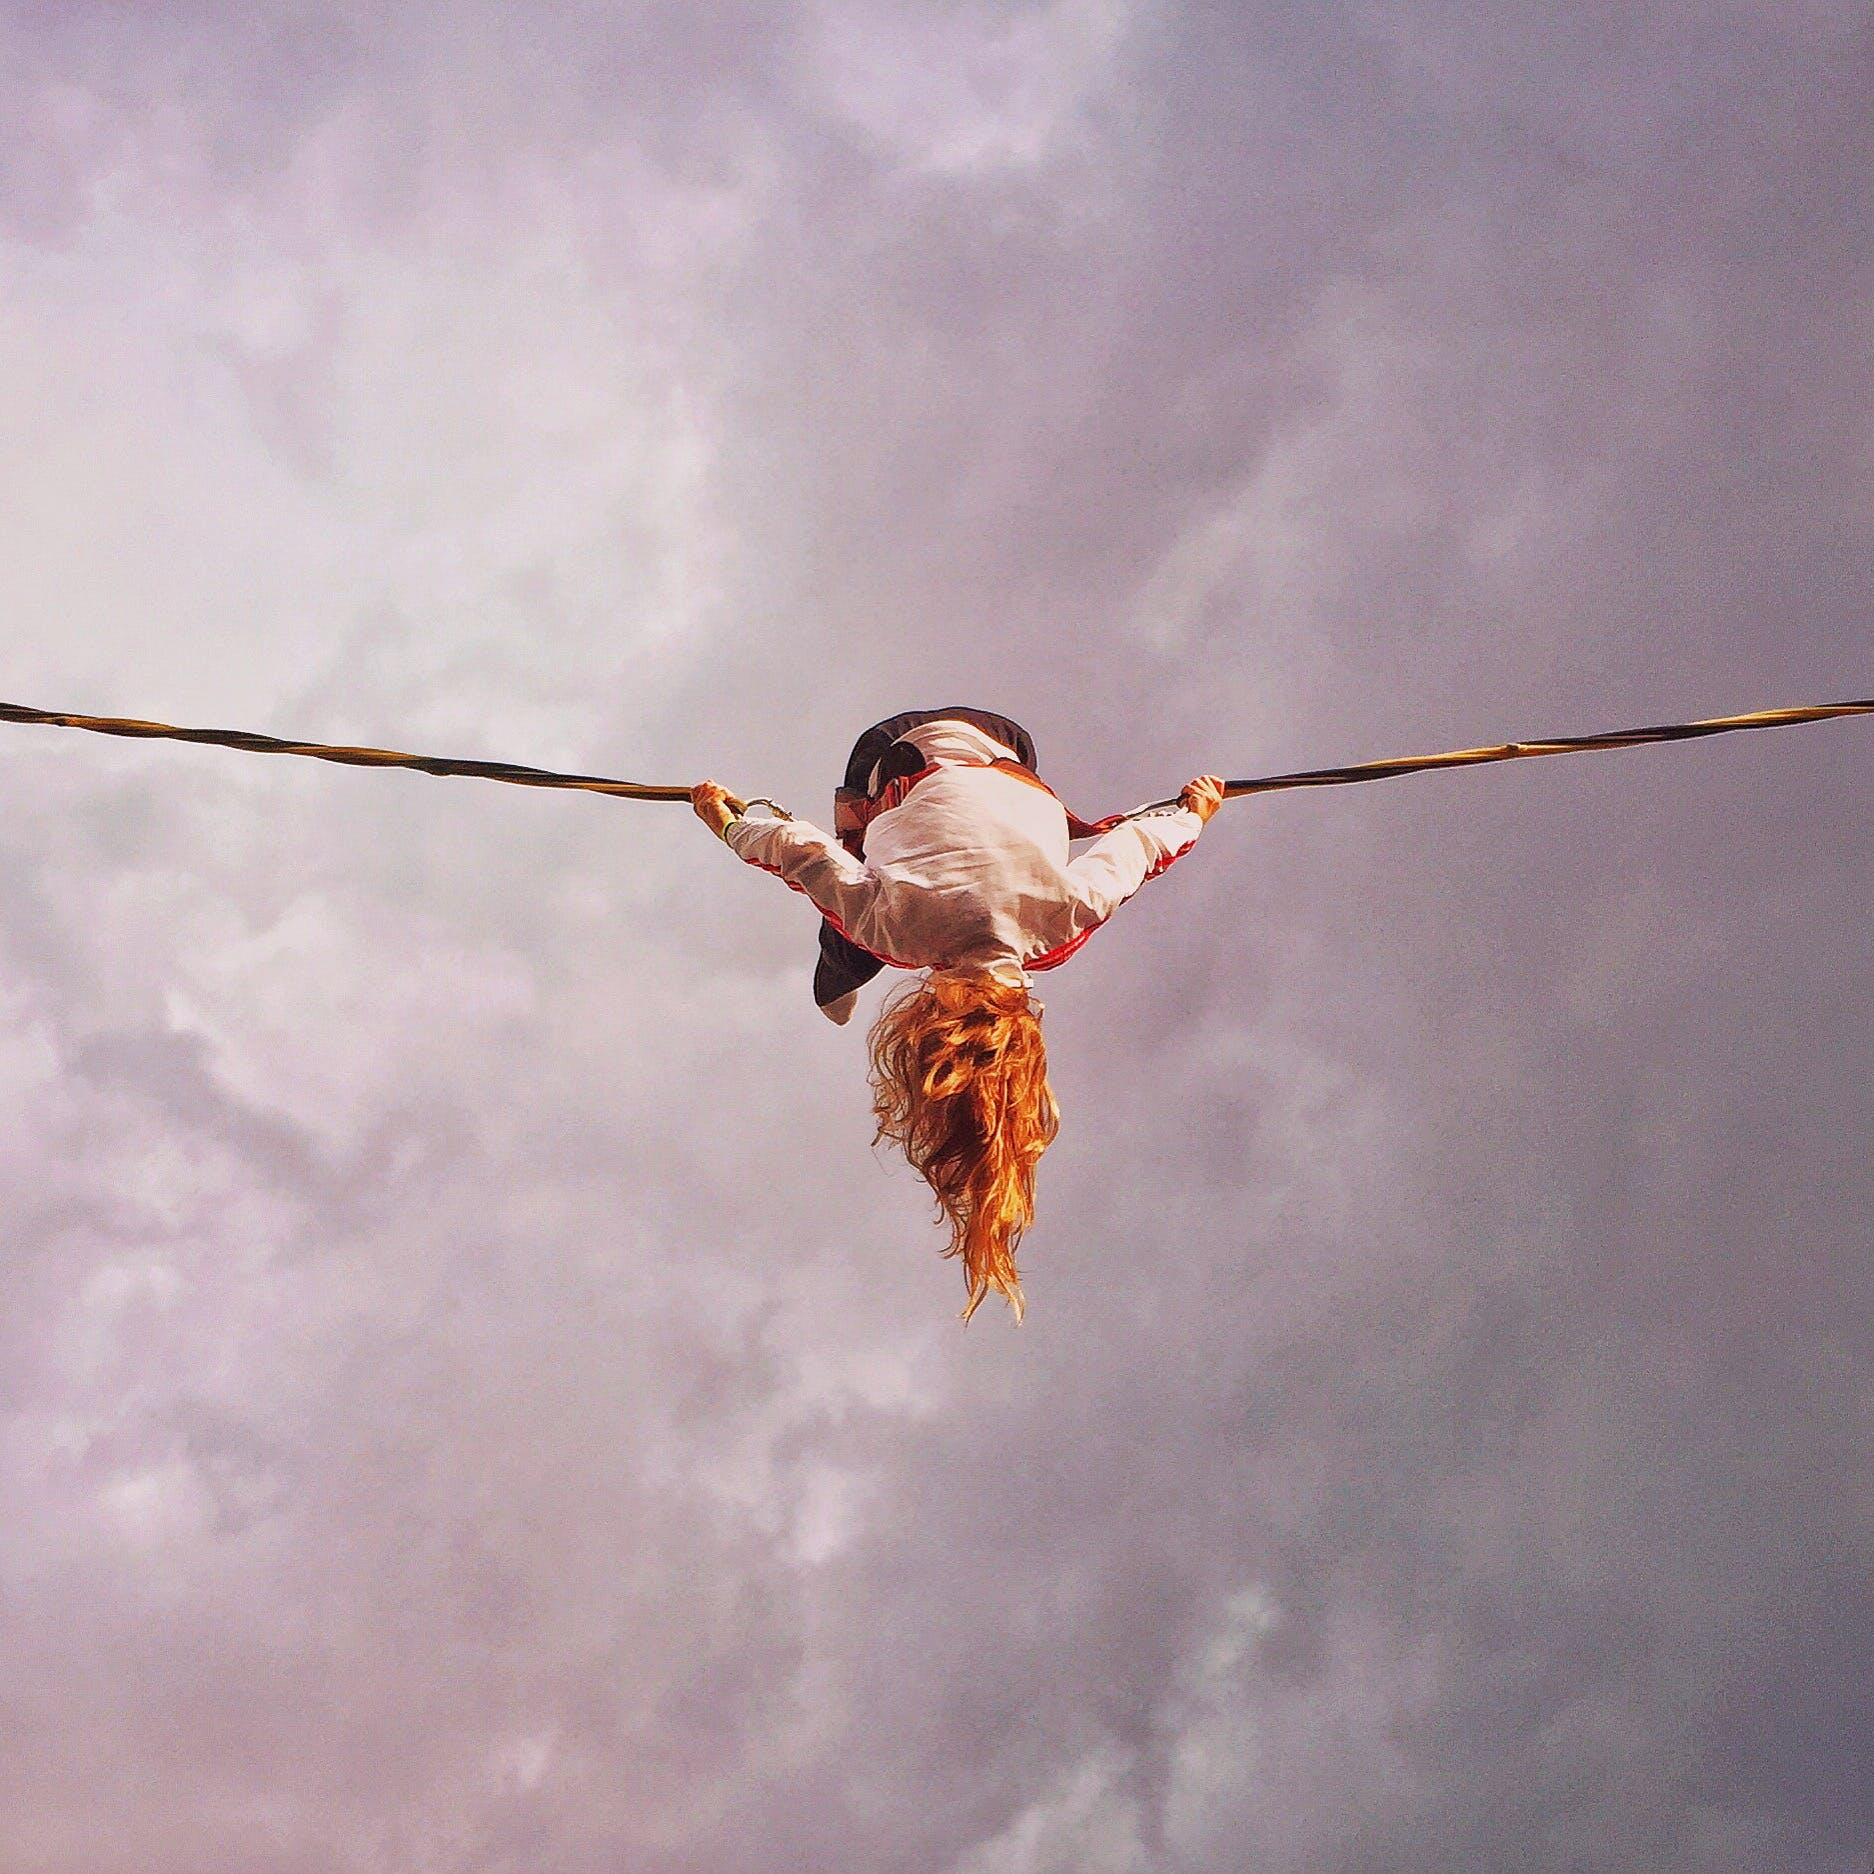 Girl With Orange Hair Flipping While Holding Rope